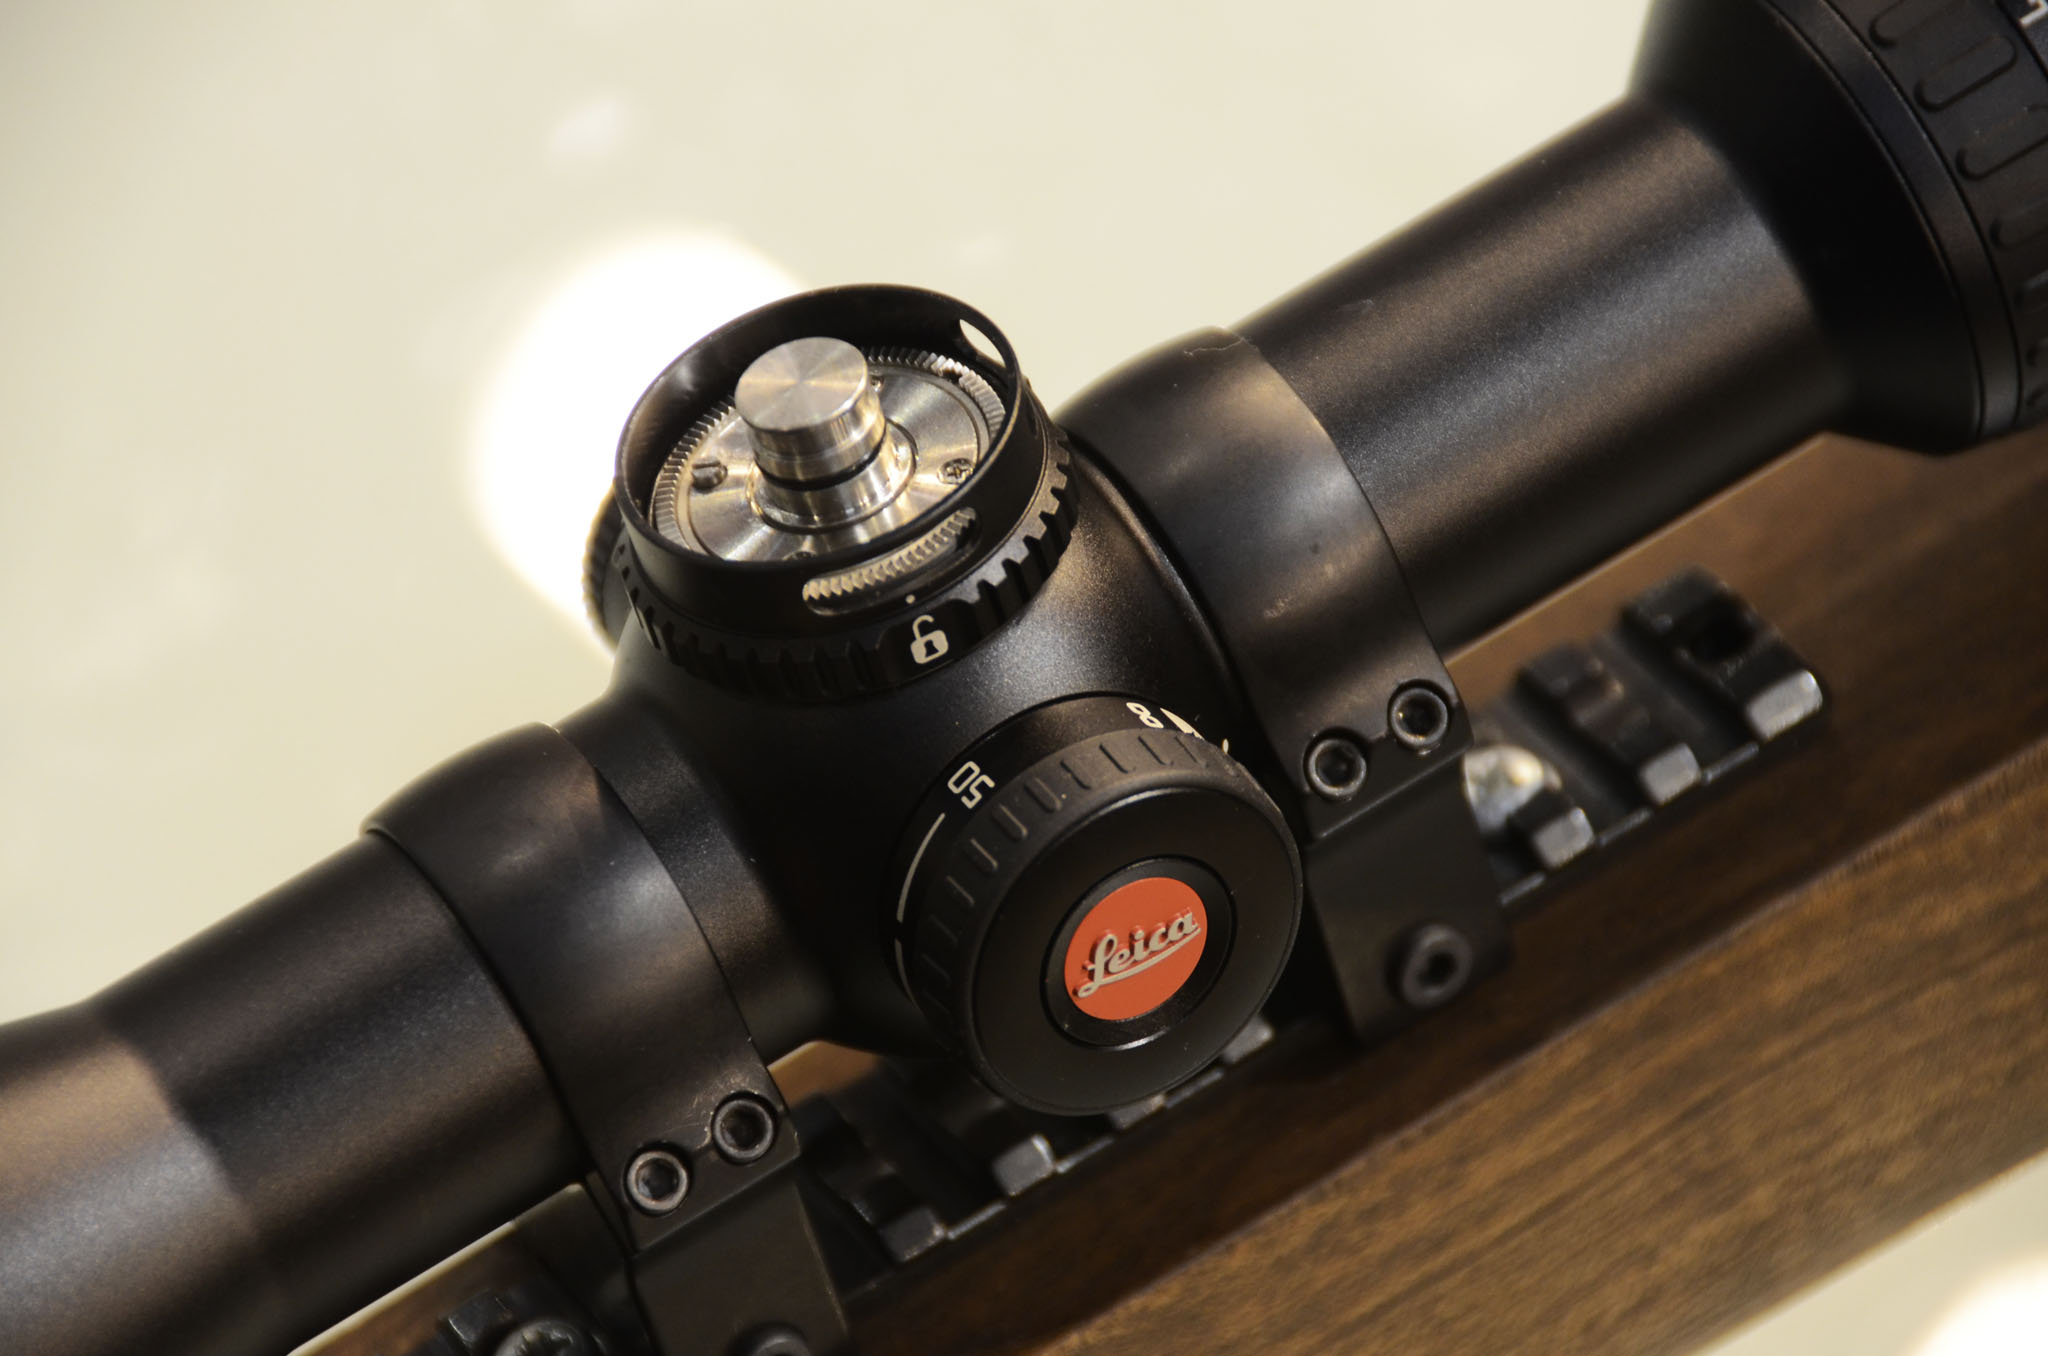 The ballistic turret of the new riflescope Leica Magnus 2.4 - 16x5: no click is lost